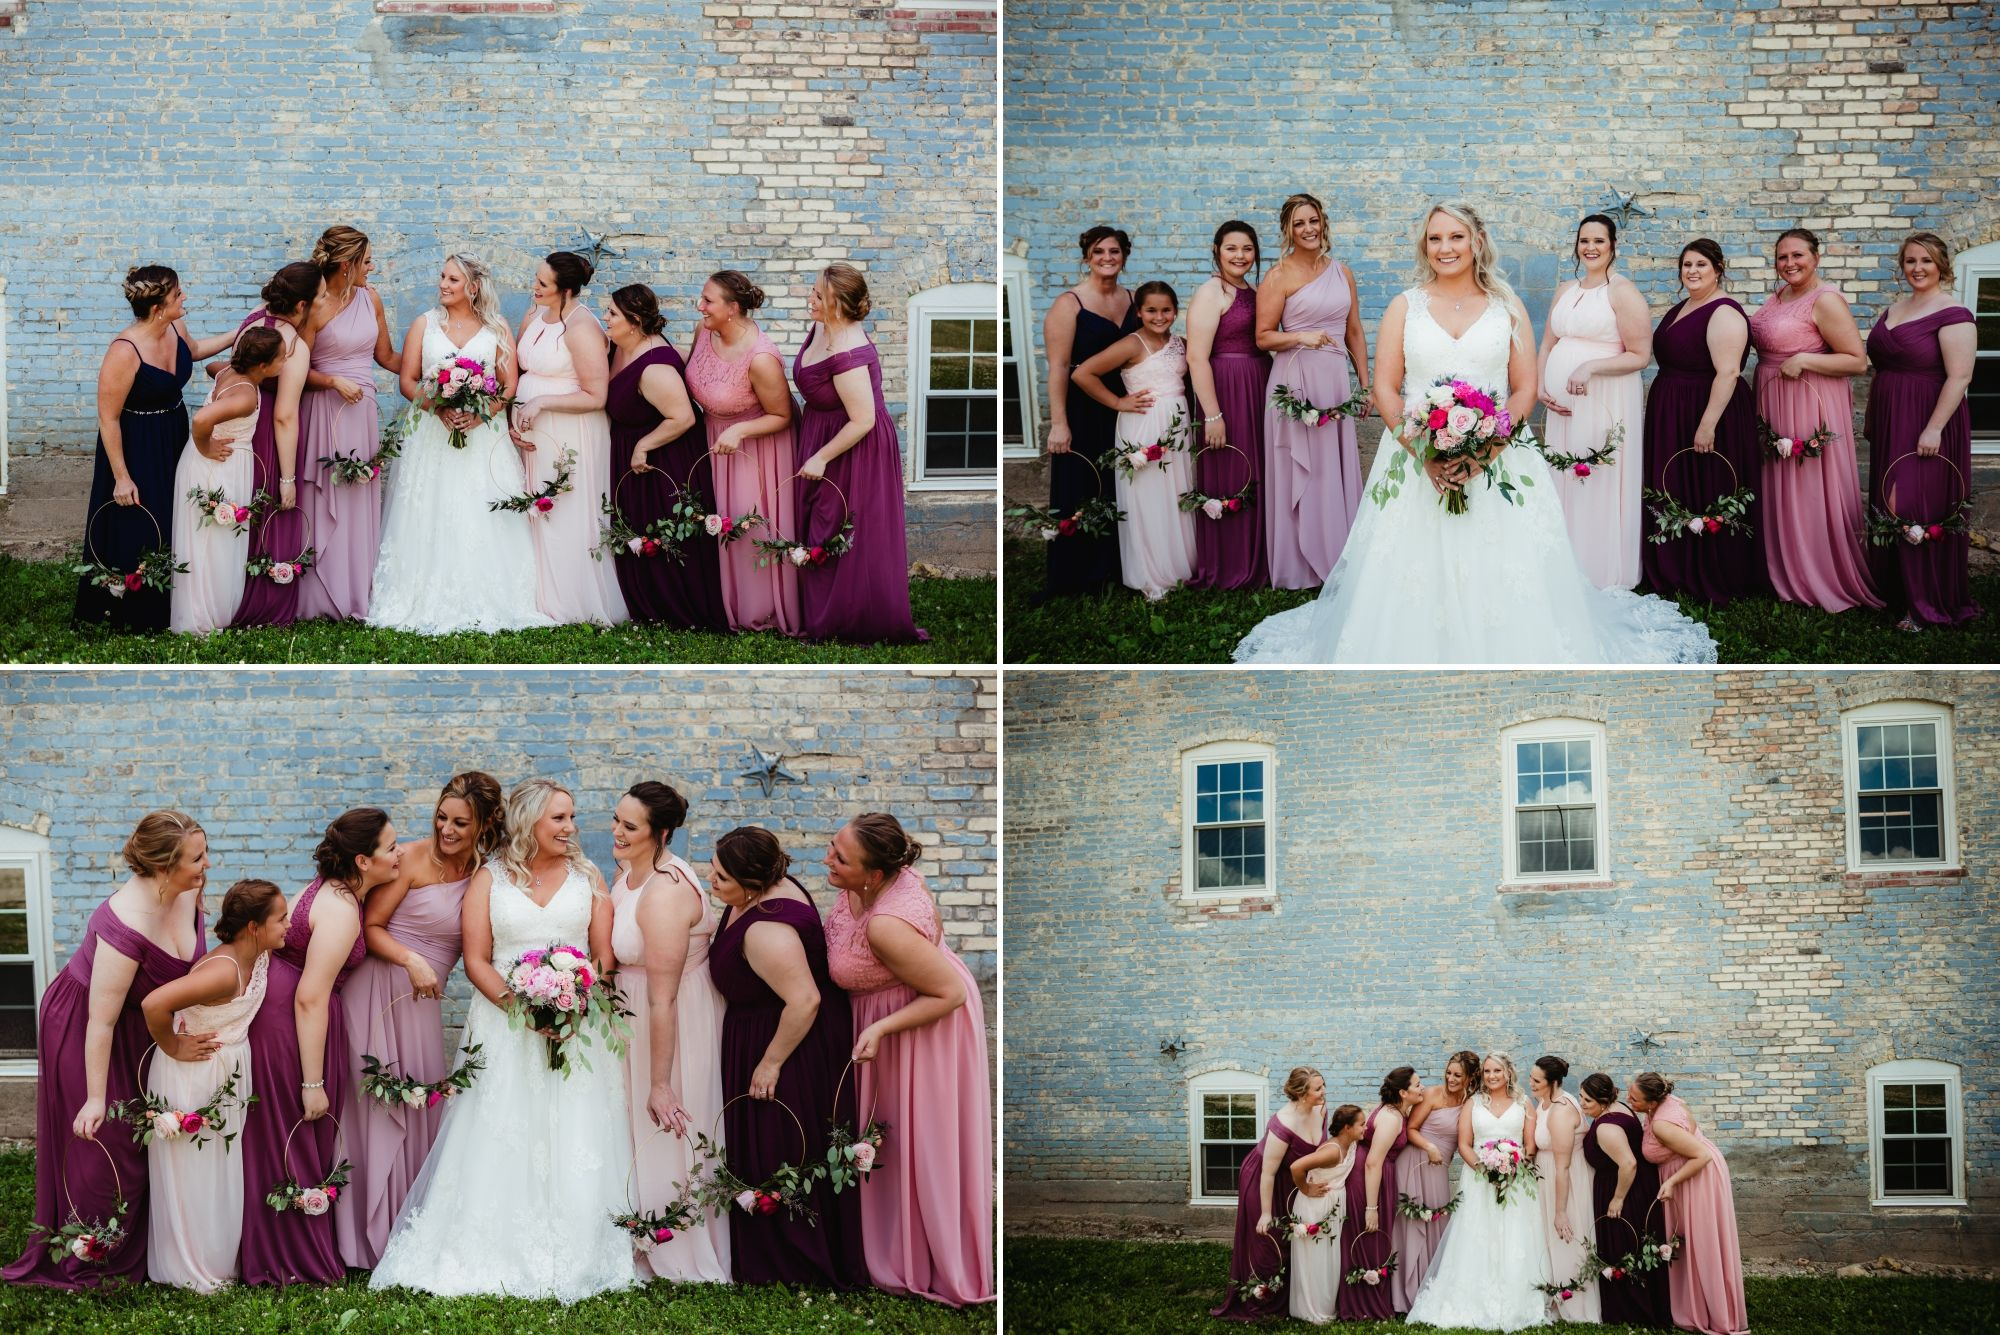 Collage of bridesmaids standing together smiling. Their dresses are pinks and purples. They're holding floral hoops.